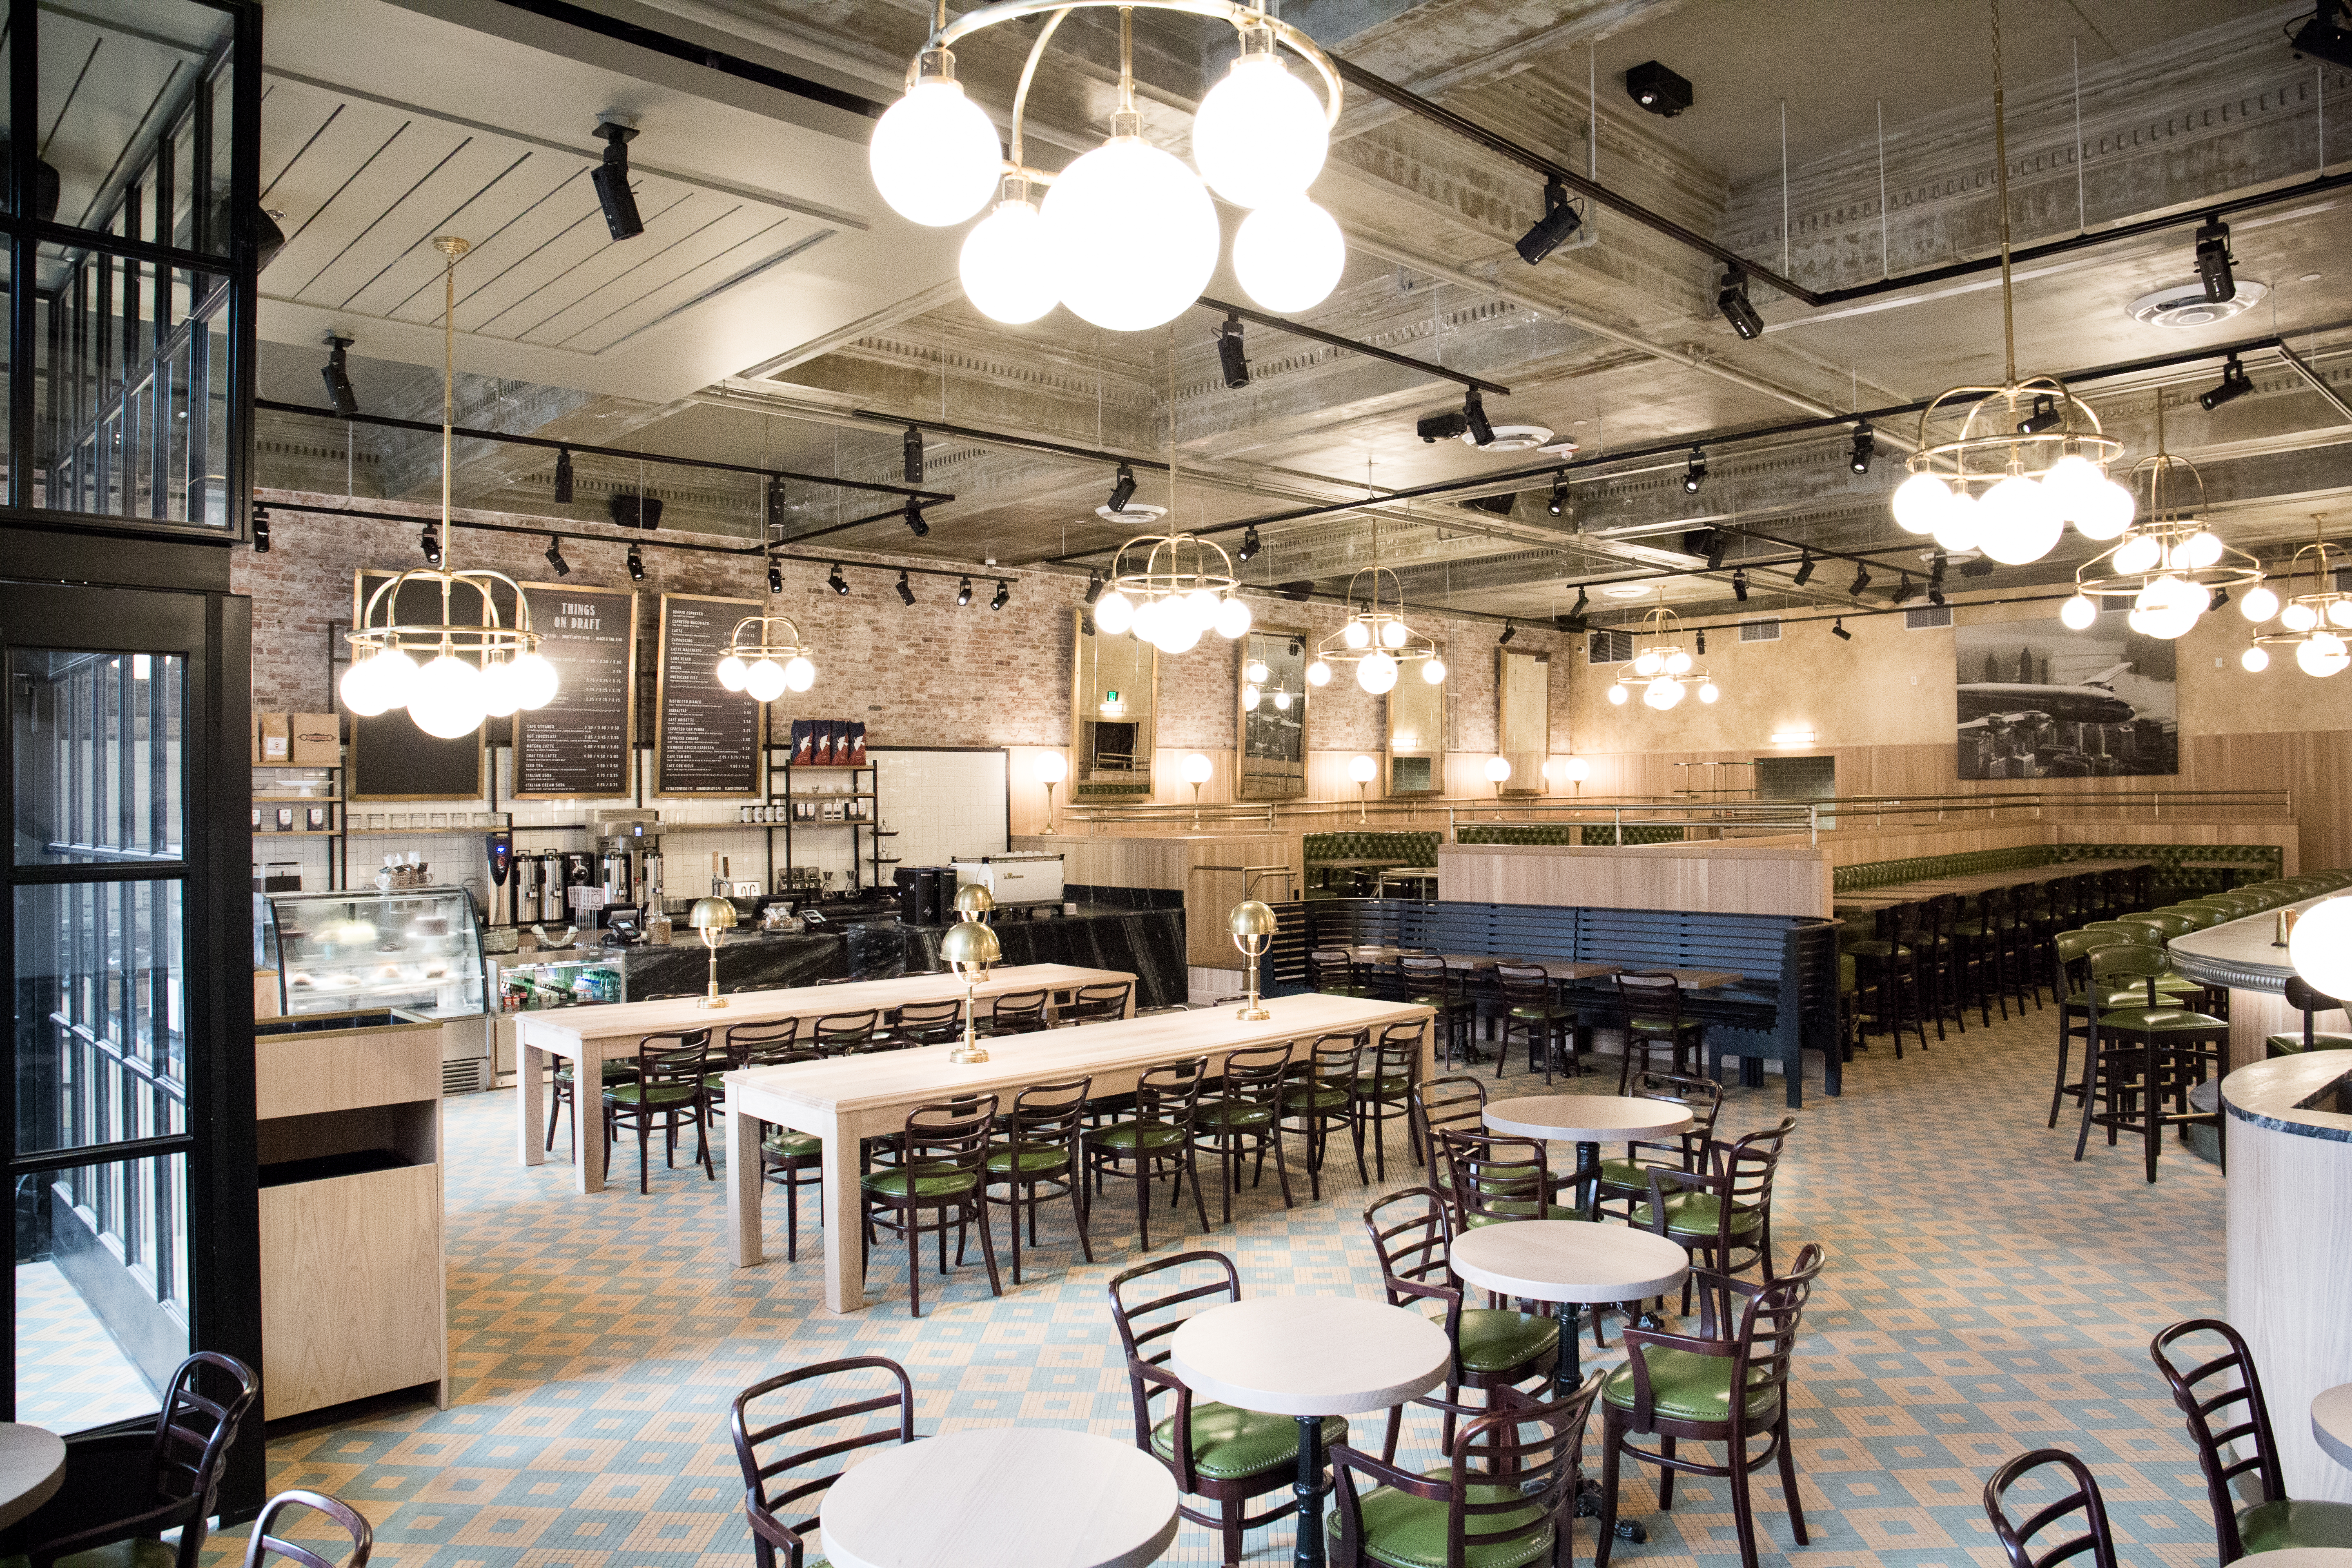 Cafe interior, featuring light tiling and green accents